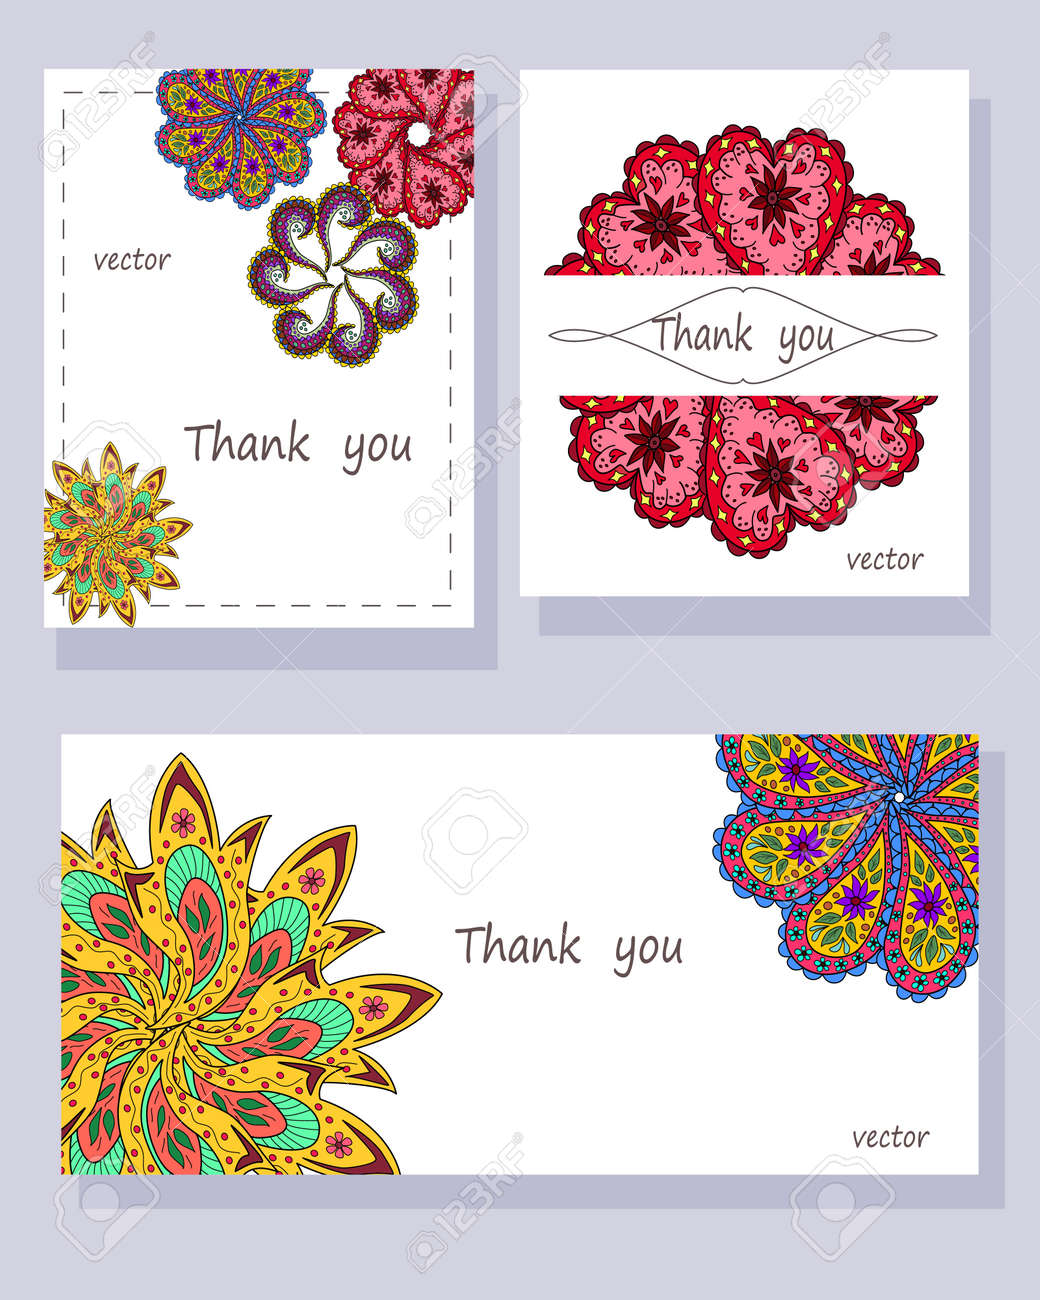 Printable Wedding Invitation Template: Invitation, Thank You ...